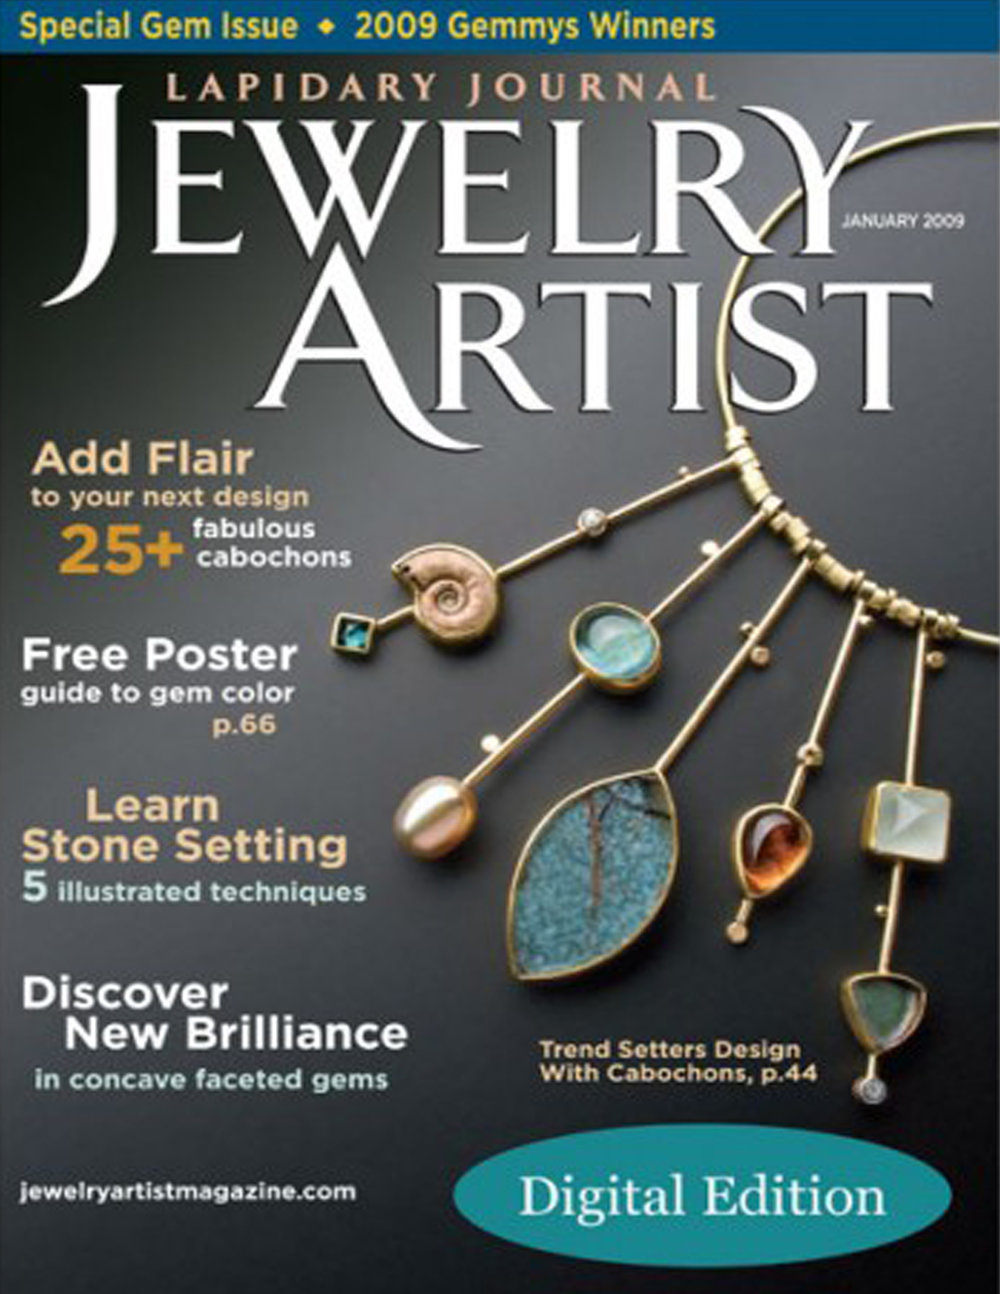 lapidary-journal-january-2009-web.jpg